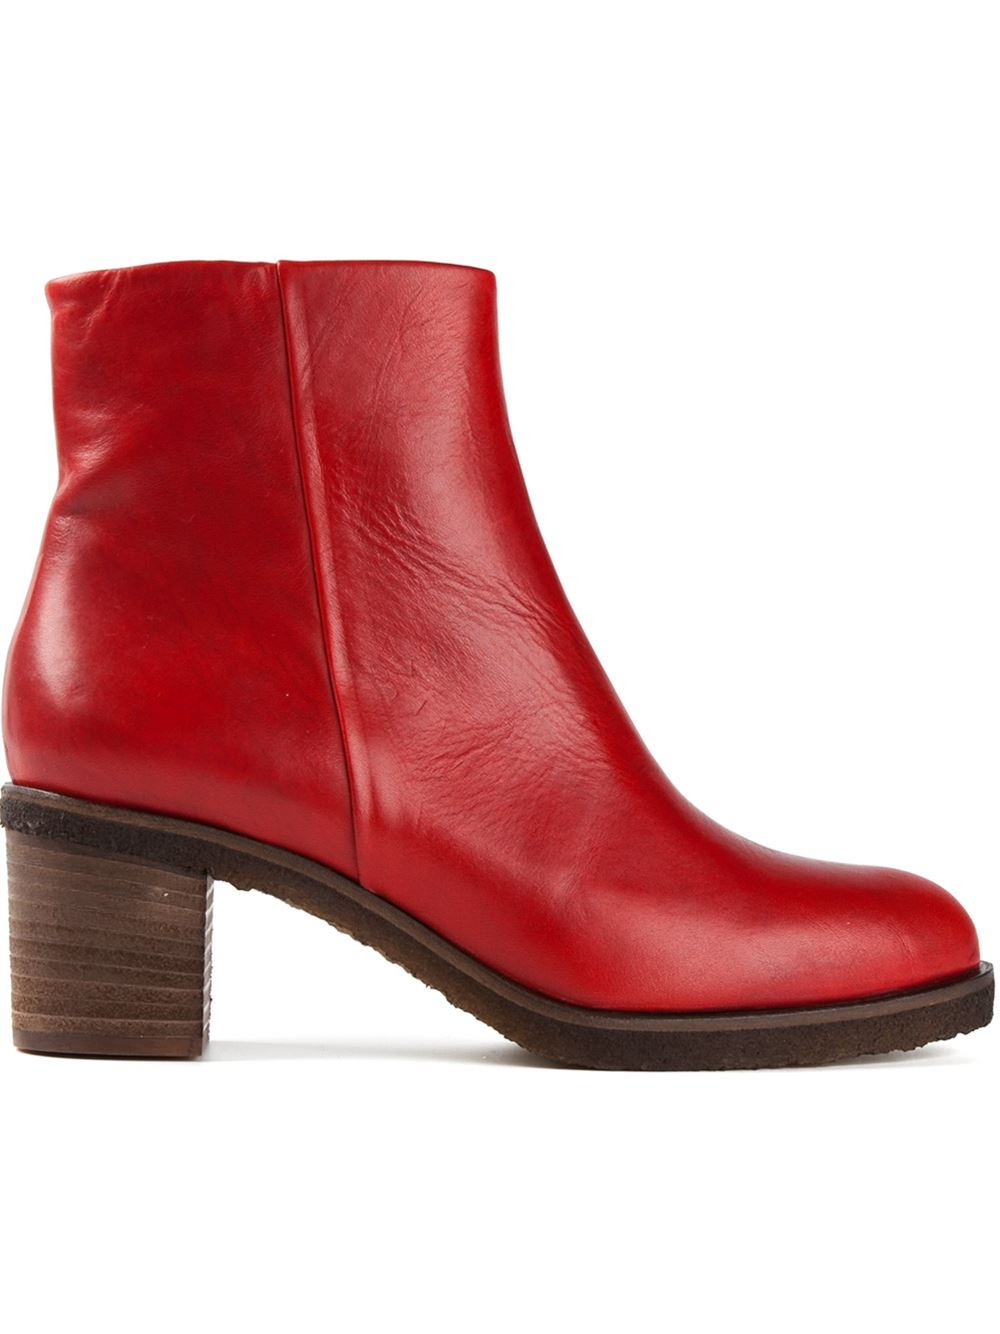 Shop for Womens red ankle boots Women's Shoes at Shopzilla. Buy Clothing & Accessories online and read professional reviews on Womens red ankle boots Women's Shoes. Find the right products at the right price every time.